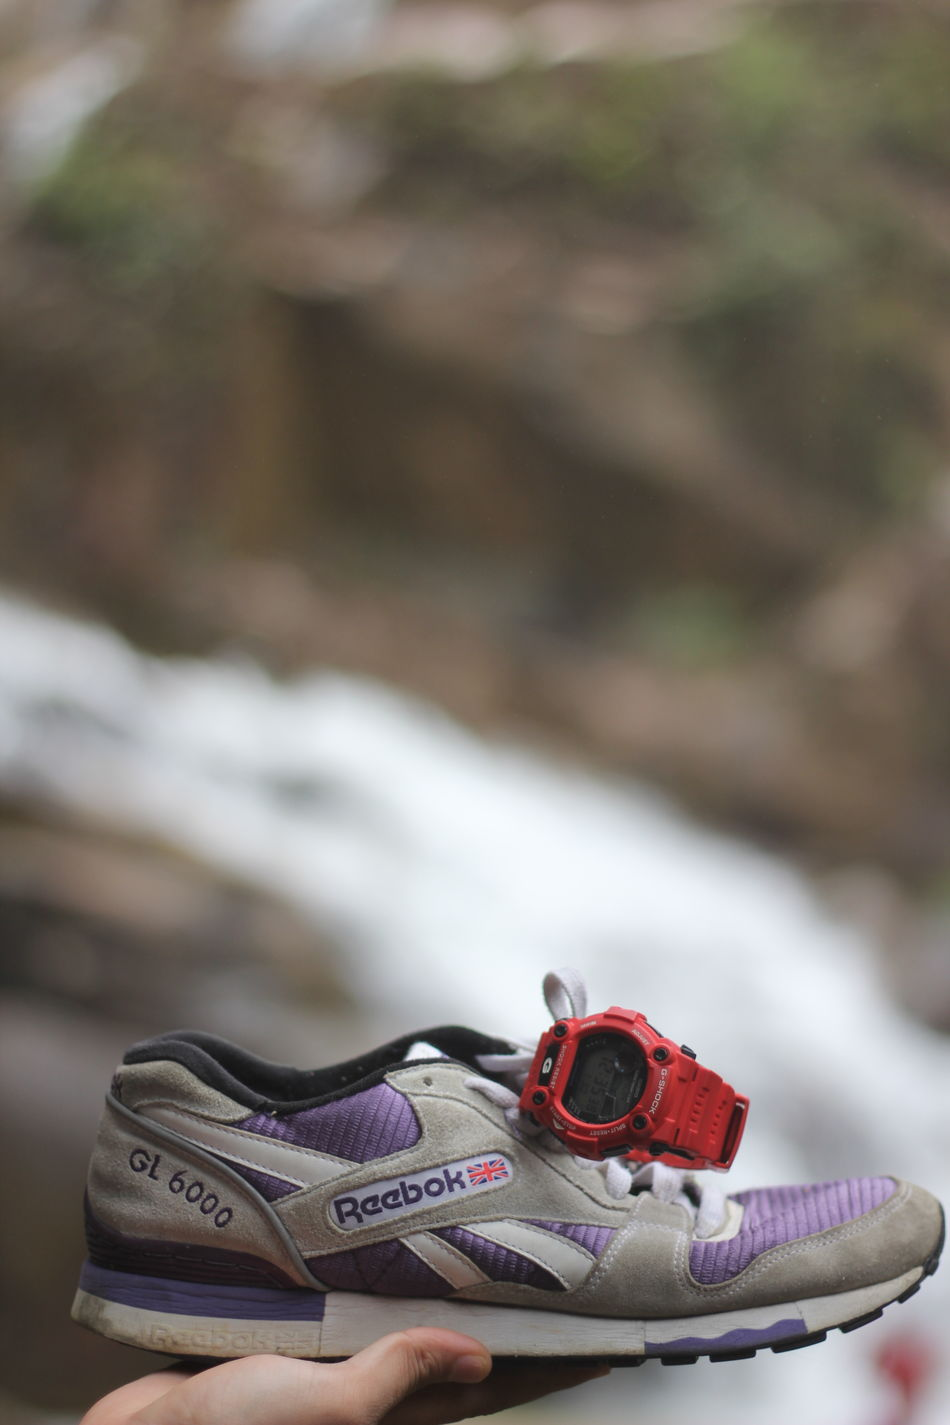 Reebookclassic Reebook GL6000 Gshock Gshocklover Outdoors Day No People Close-up Nature Canon Canon60d 50mm F1.8 Waterfall Landscape Landscape_photography Nature Photography Portrait